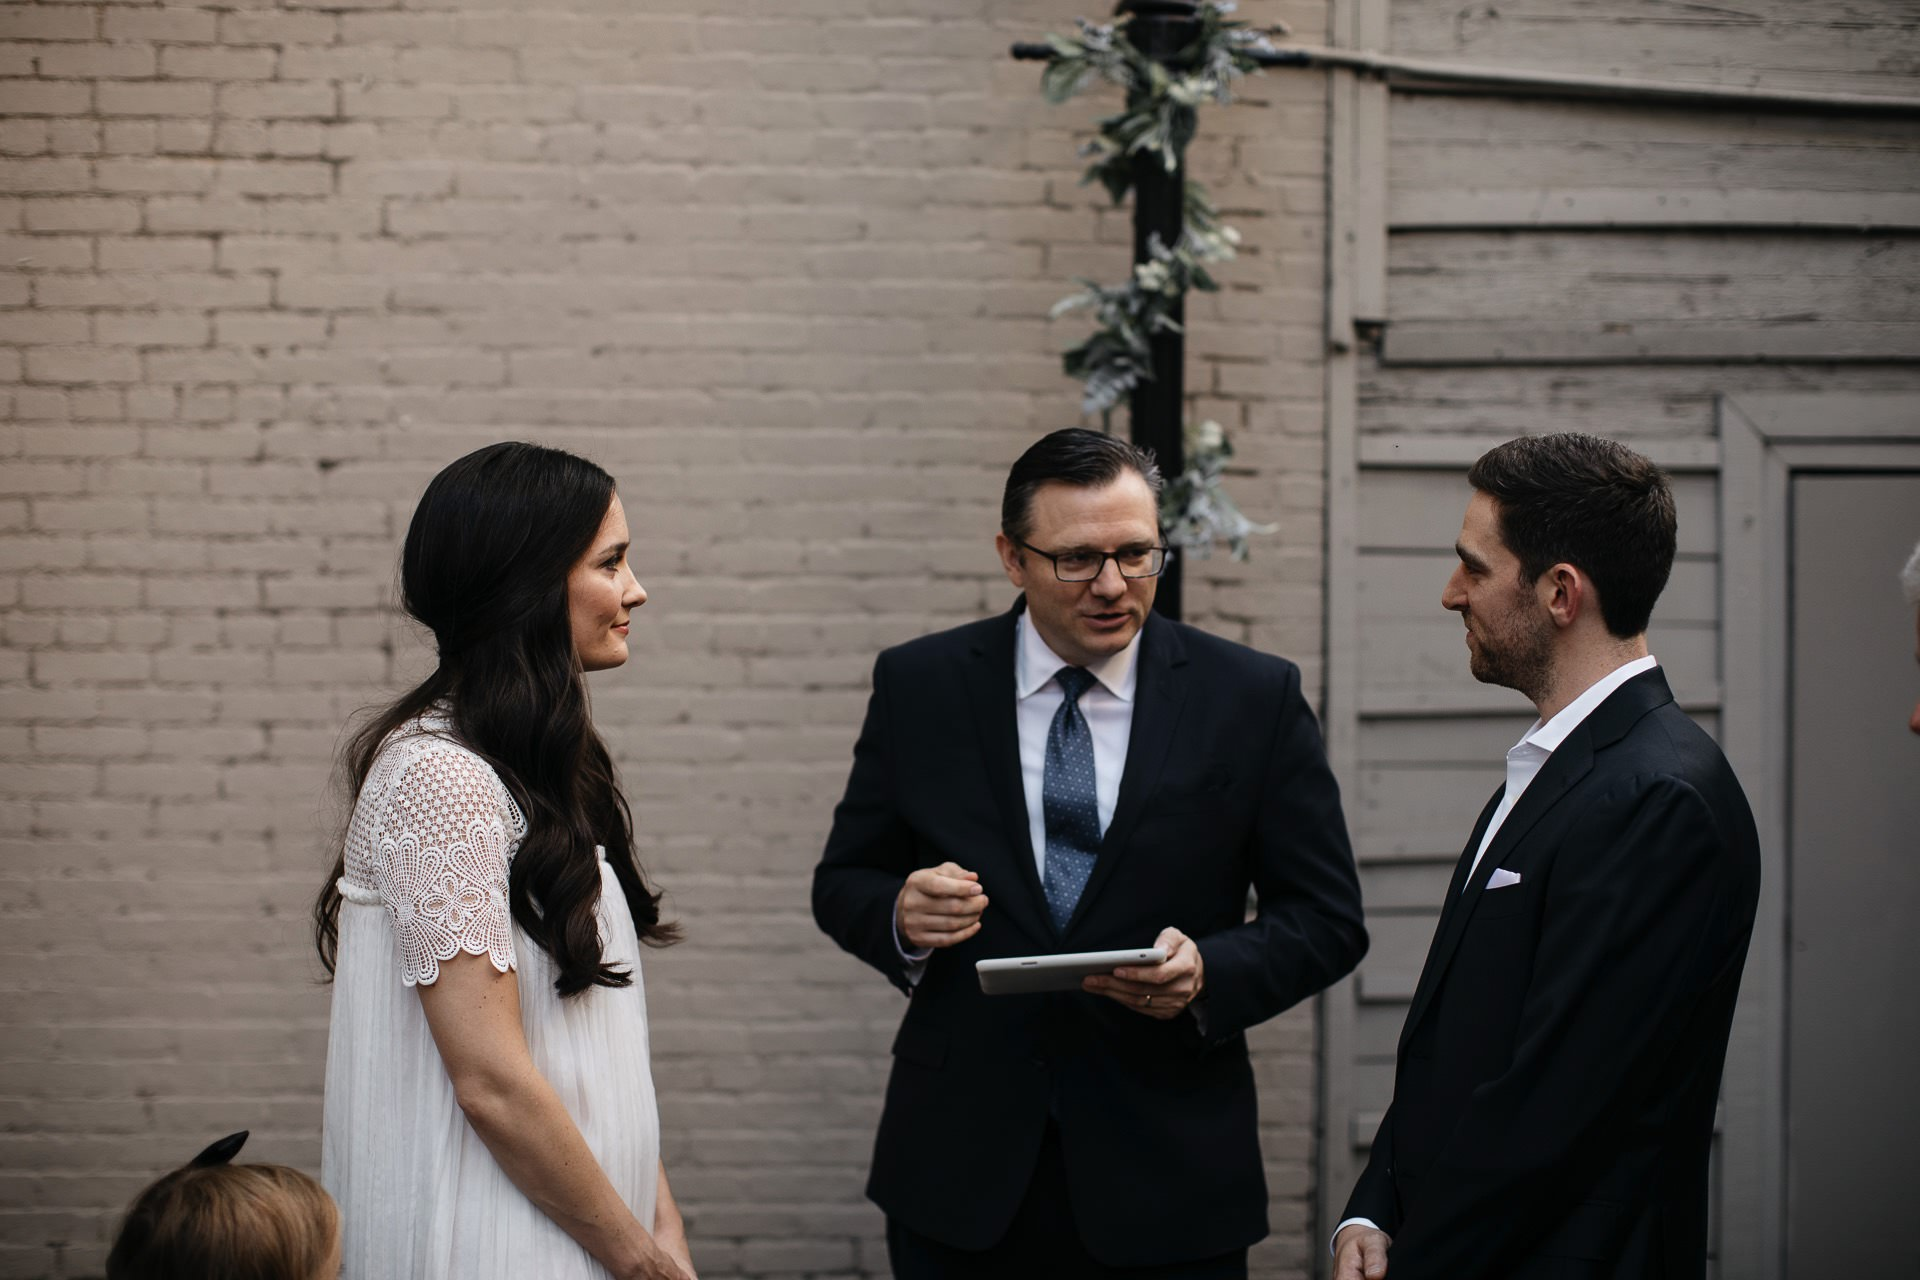 Emmy & Jesse Intimate New York Elopement in West Village, New York, by Jean-Laurent Gaudy